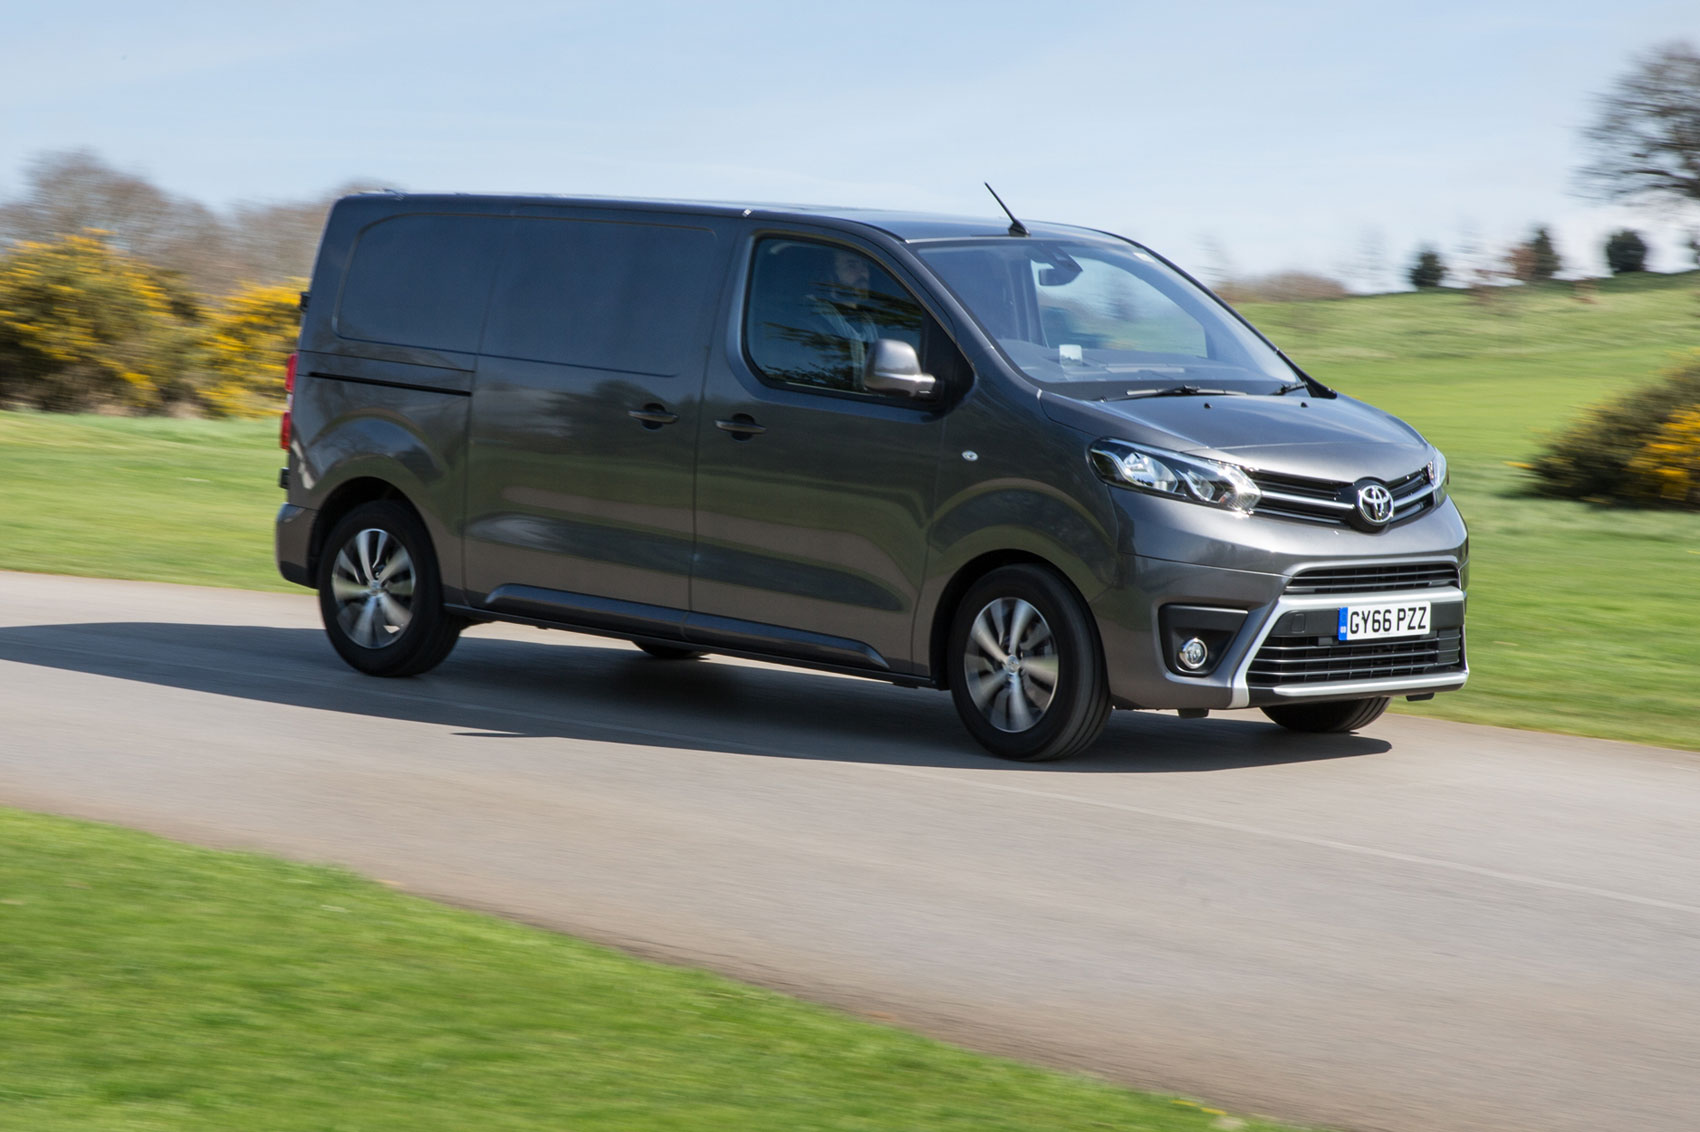 toyota proace mwb 1 6d 115bhp comfort van tss road test parkers. Black Bedroom Furniture Sets. Home Design Ideas